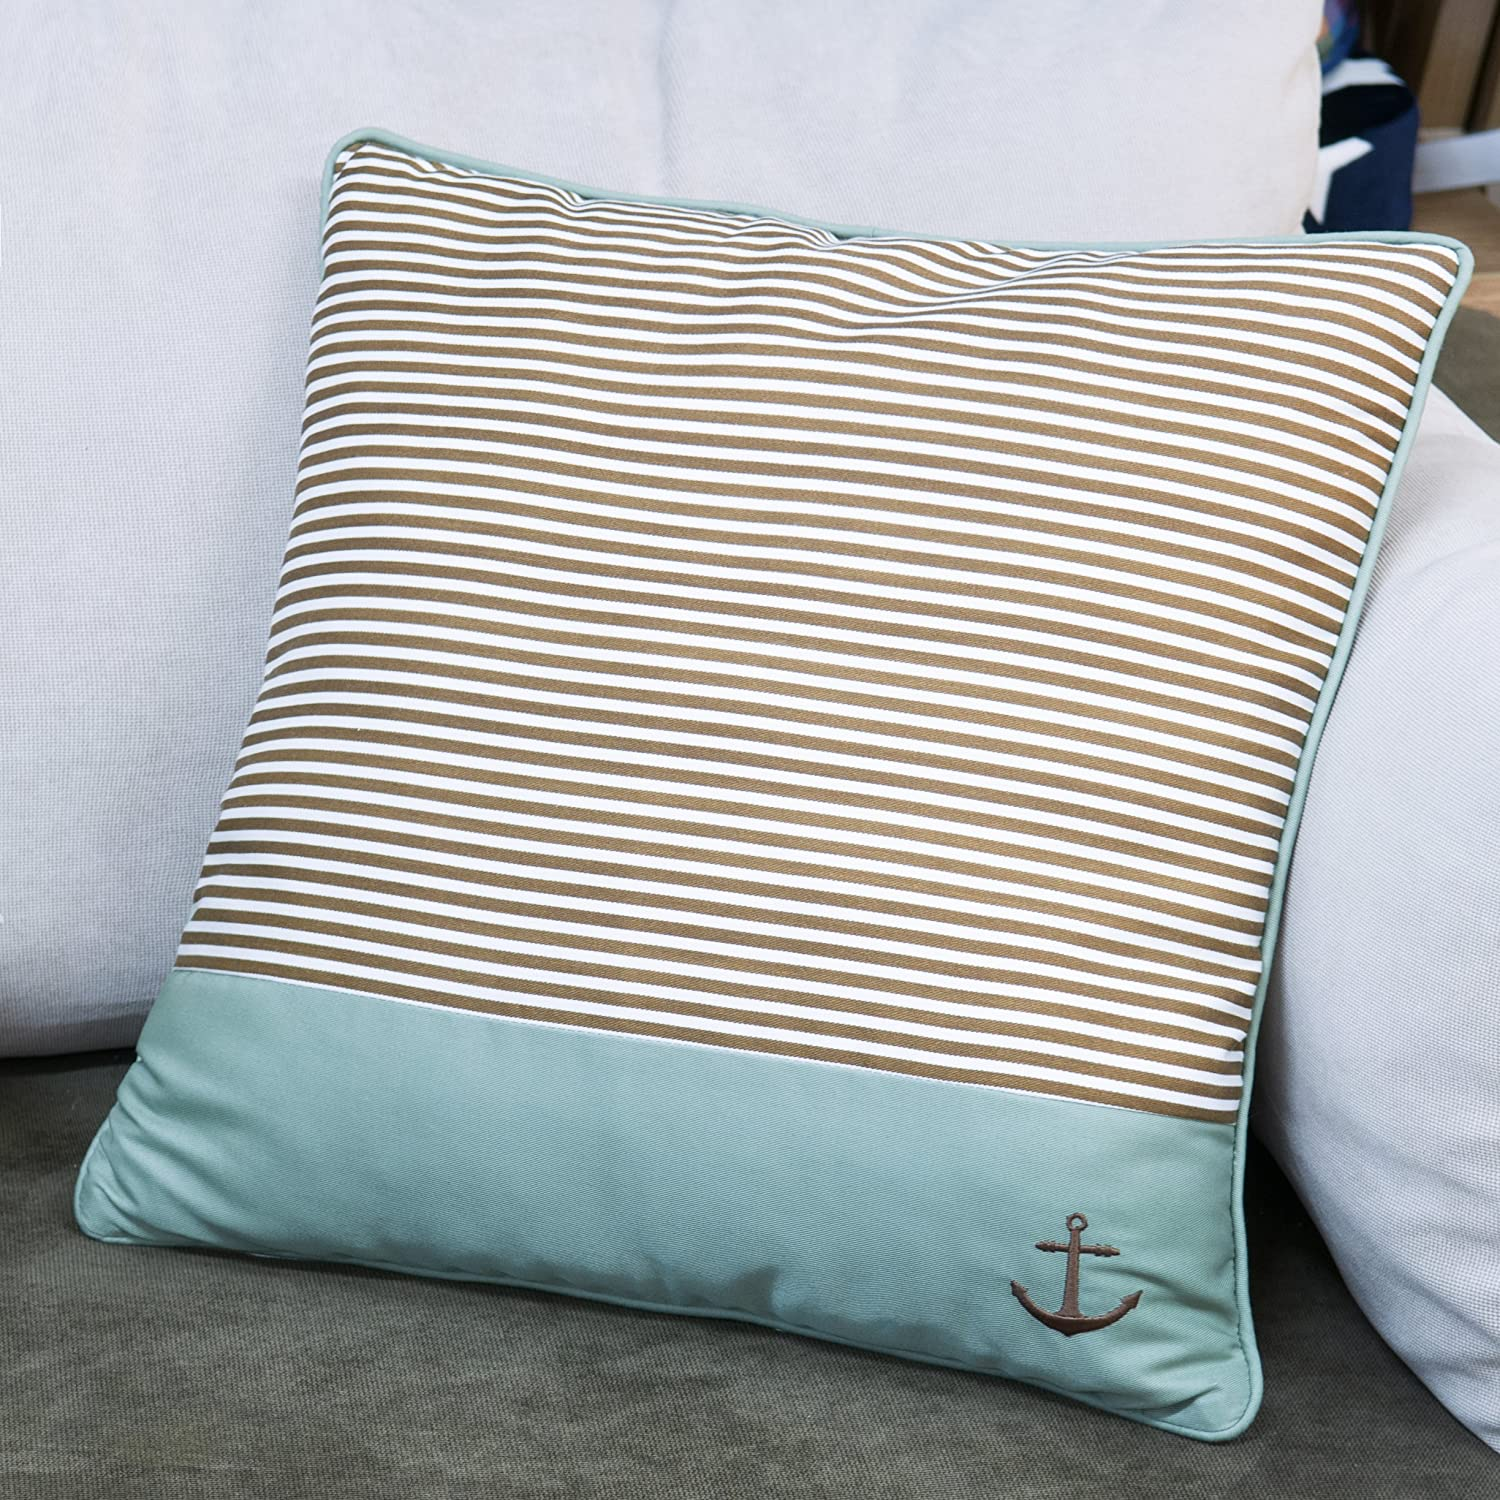 Stripe COMIN18JU016529 Shinnwa 4 Pcs Cotton Polyester Striped Decorative Throw Pillow Case Cushion Covers for Bedroom 18 By 18